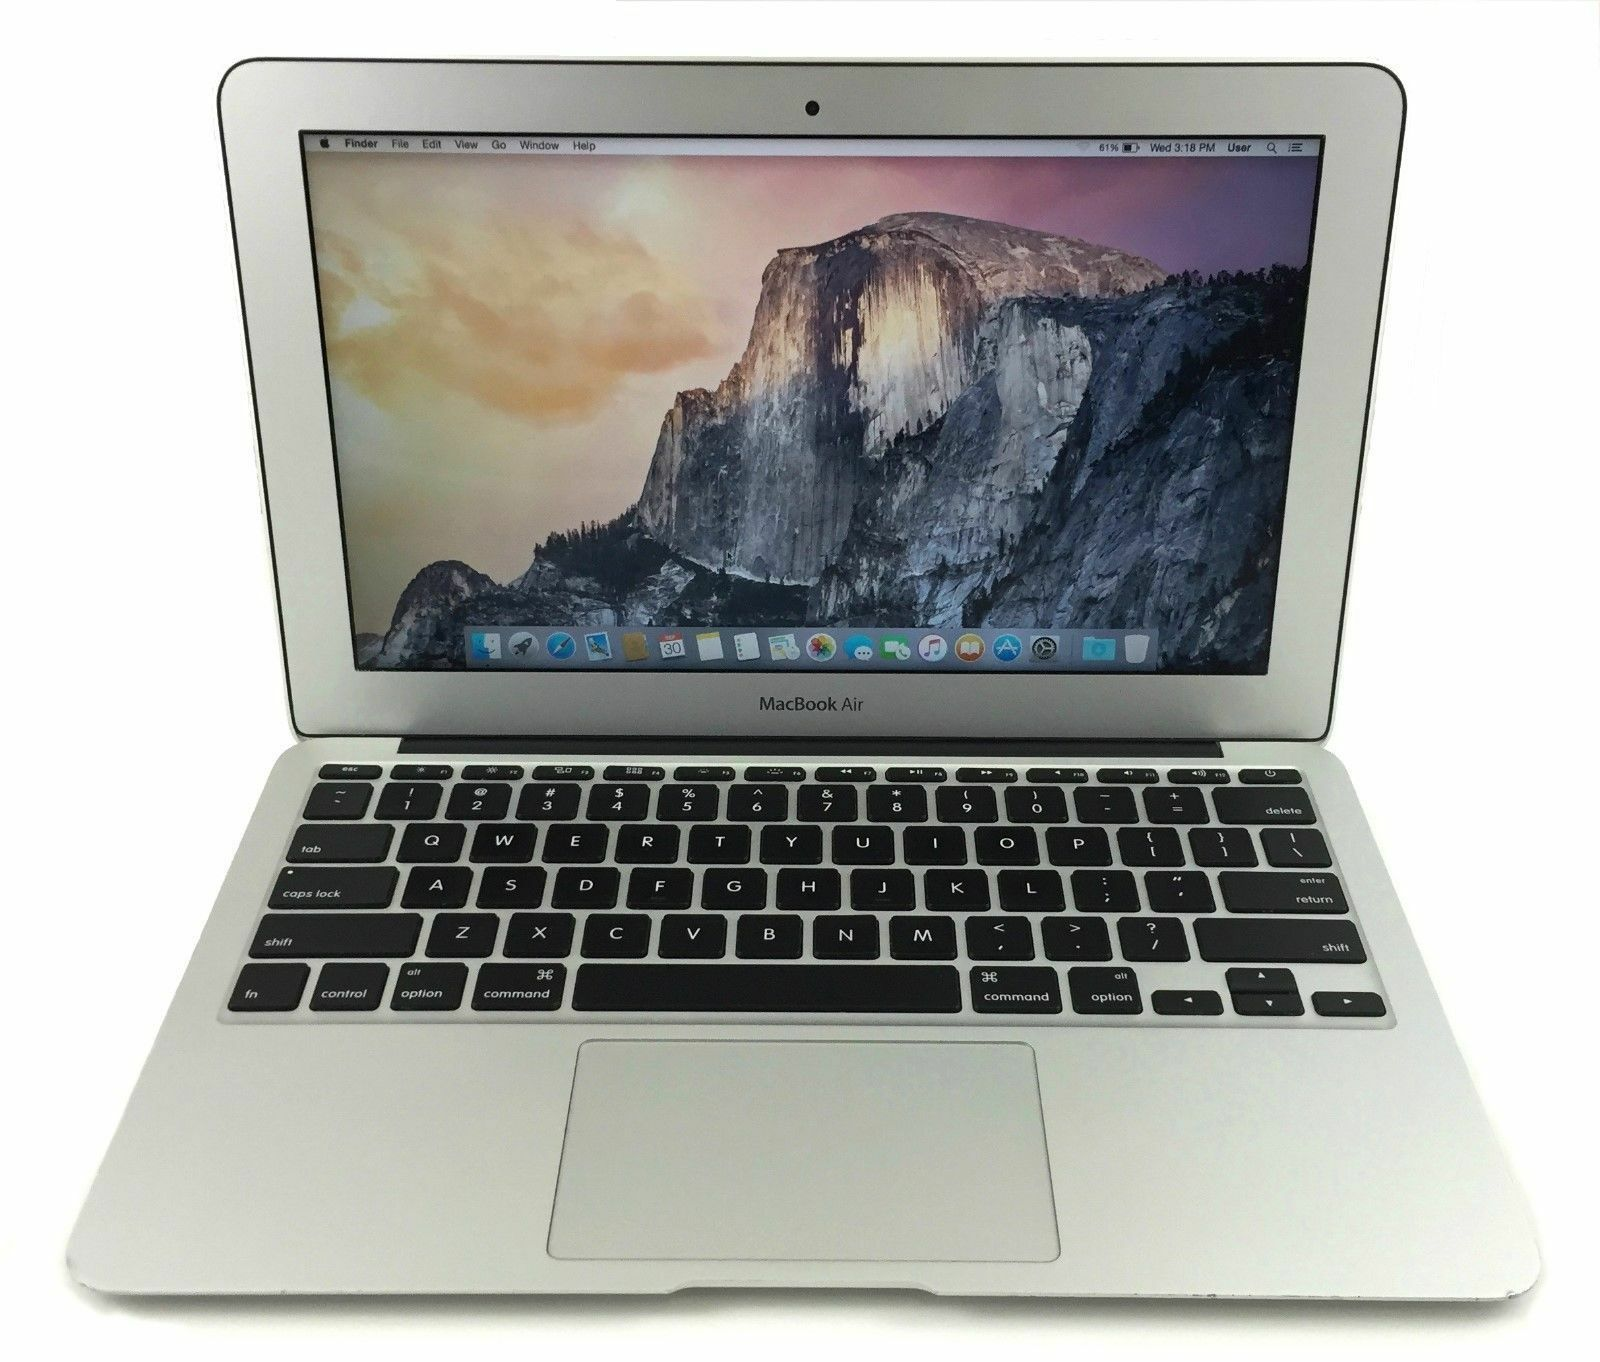 Apple Macbook Air 11 Intel I5 4260u 14ghz 4gb Ram 128gb Ssd Os X New 2017 Mqd42 Silver 1 Of 4only 0 Available